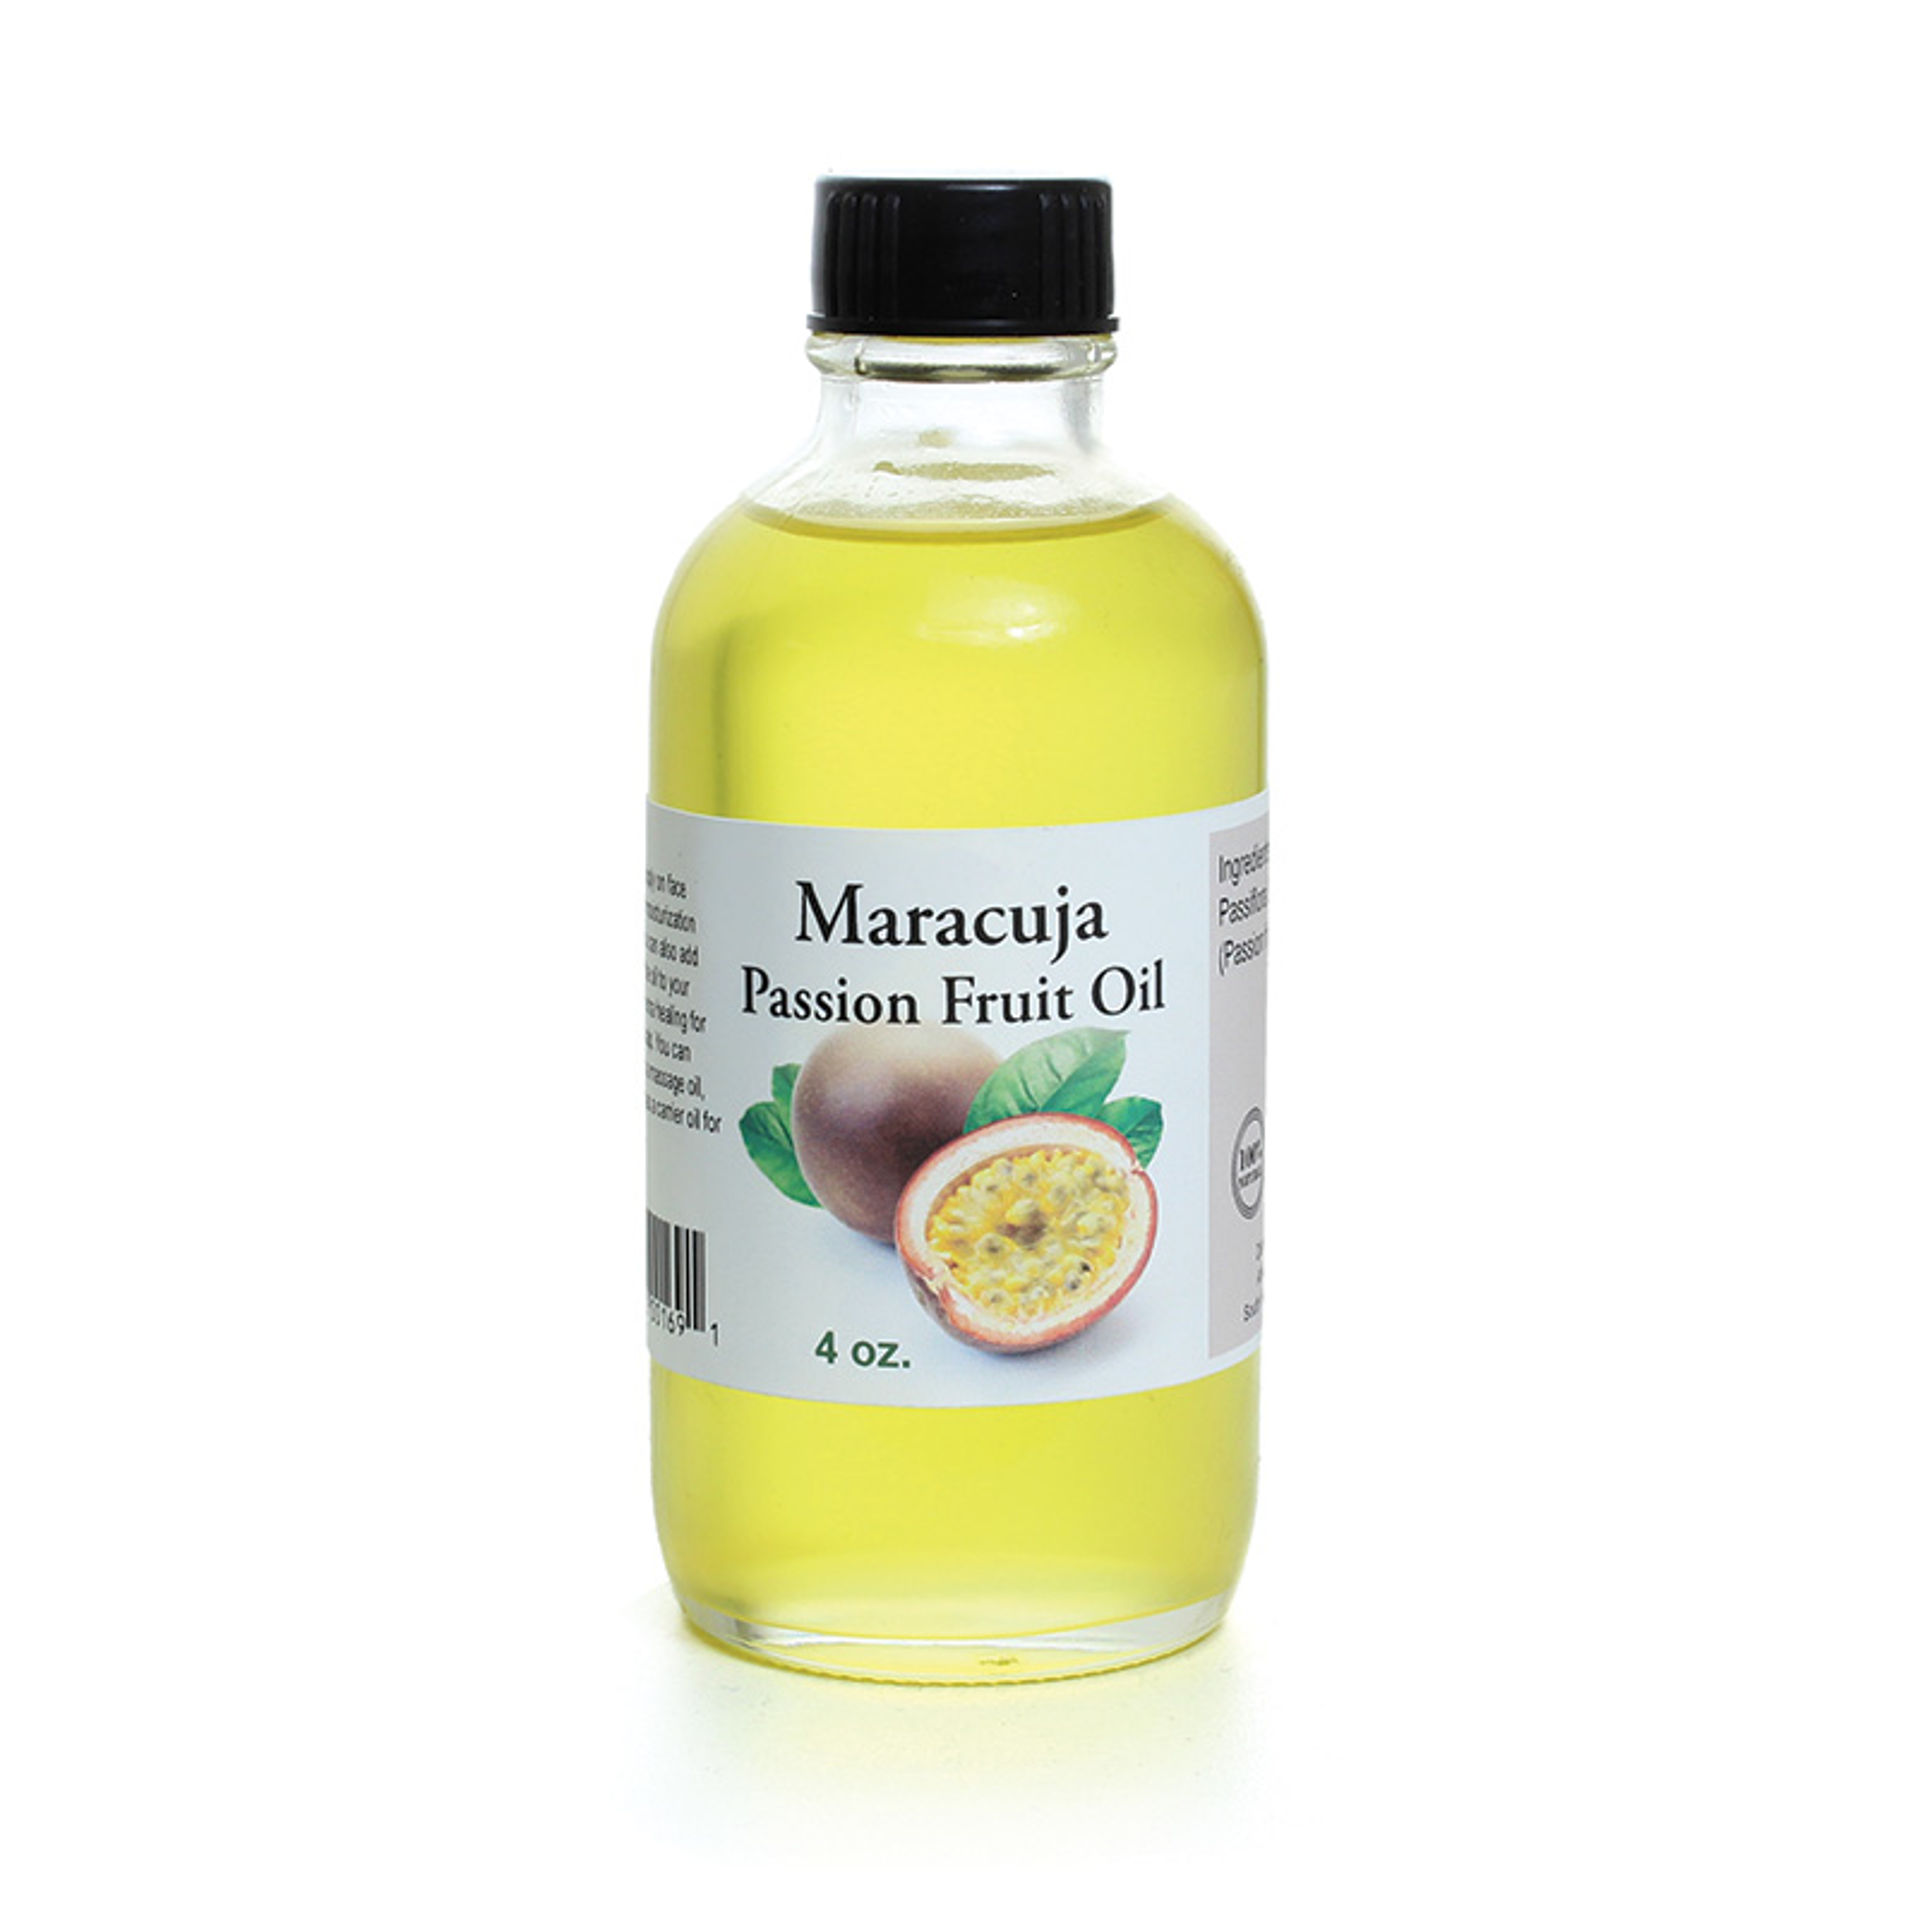 Picture of Maracuja Passion Fruit Oil - 4 oz.